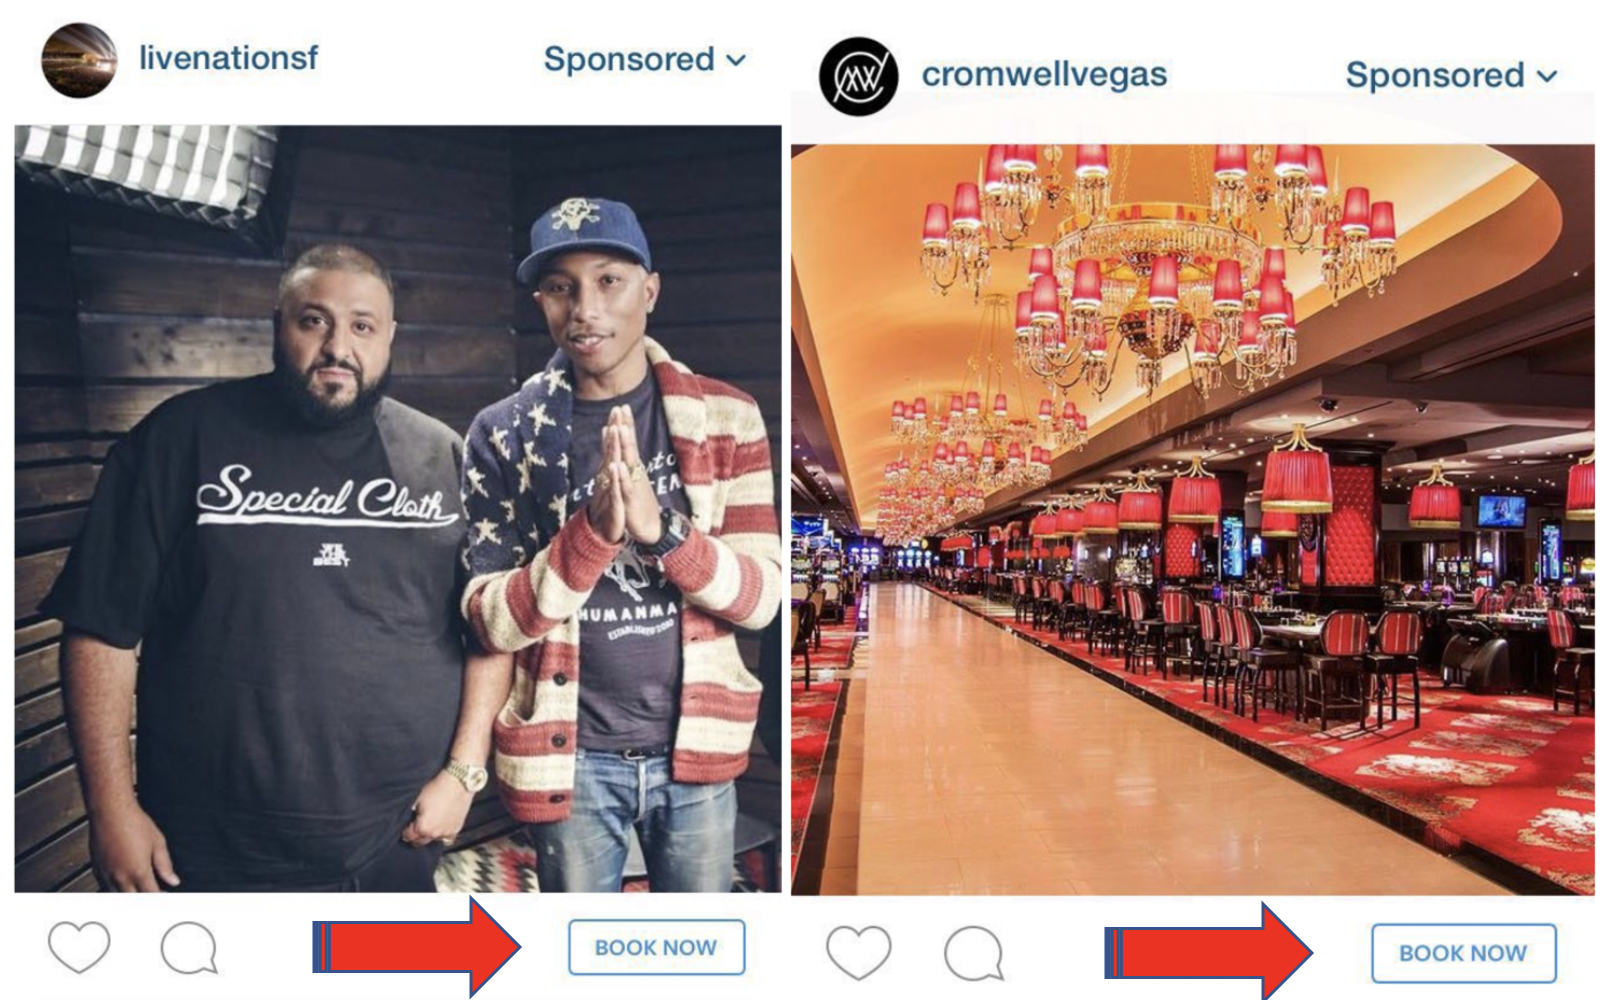 Instagram CTA on Ads – Book Now!